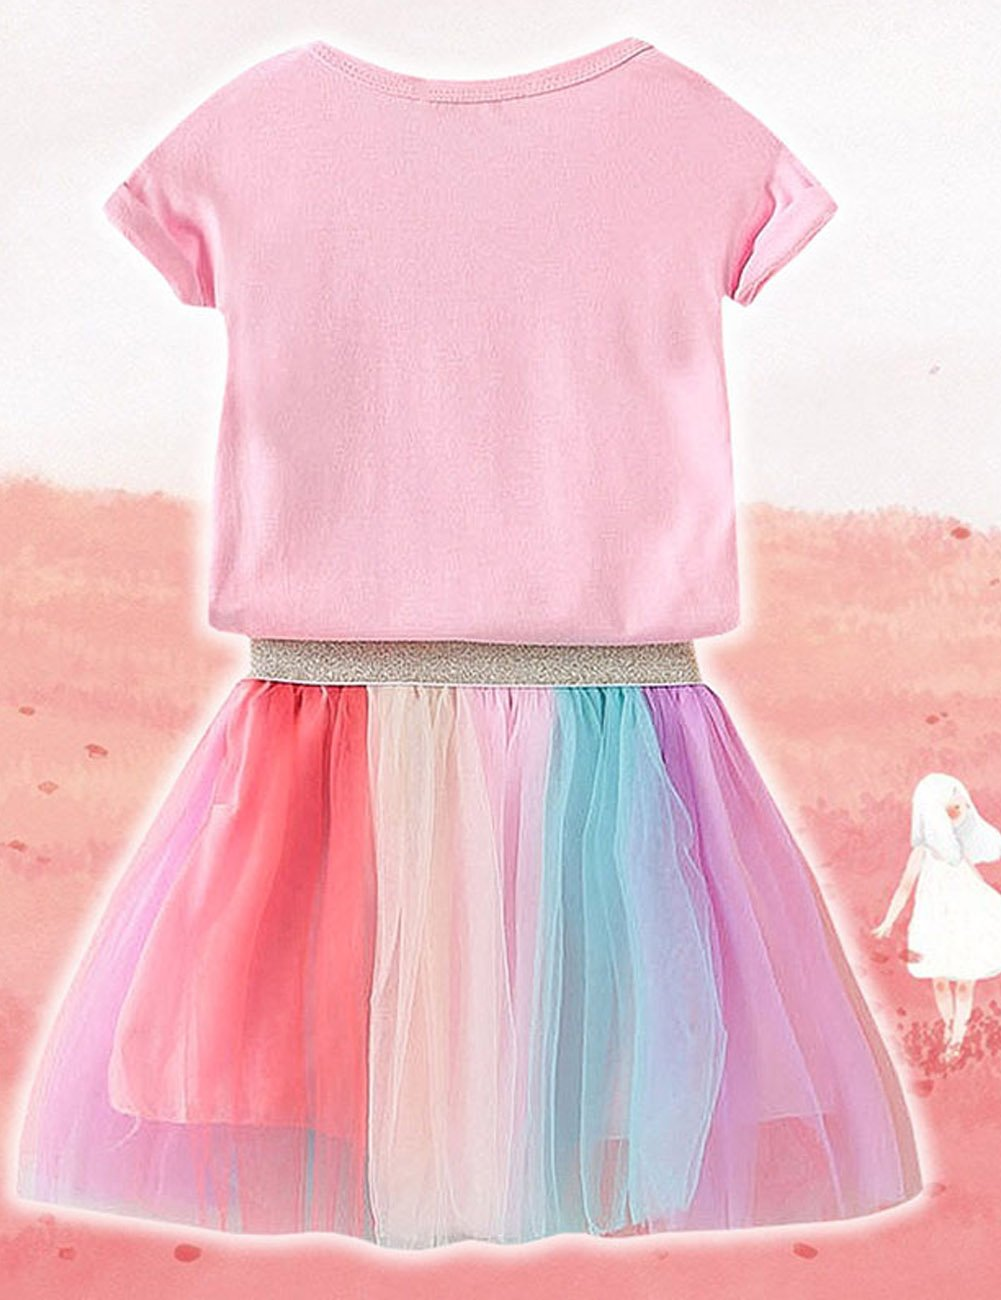 7712854c56b baby girl unicorn dress. rainbow tulle tutu party dress. baby clothing  shopping online